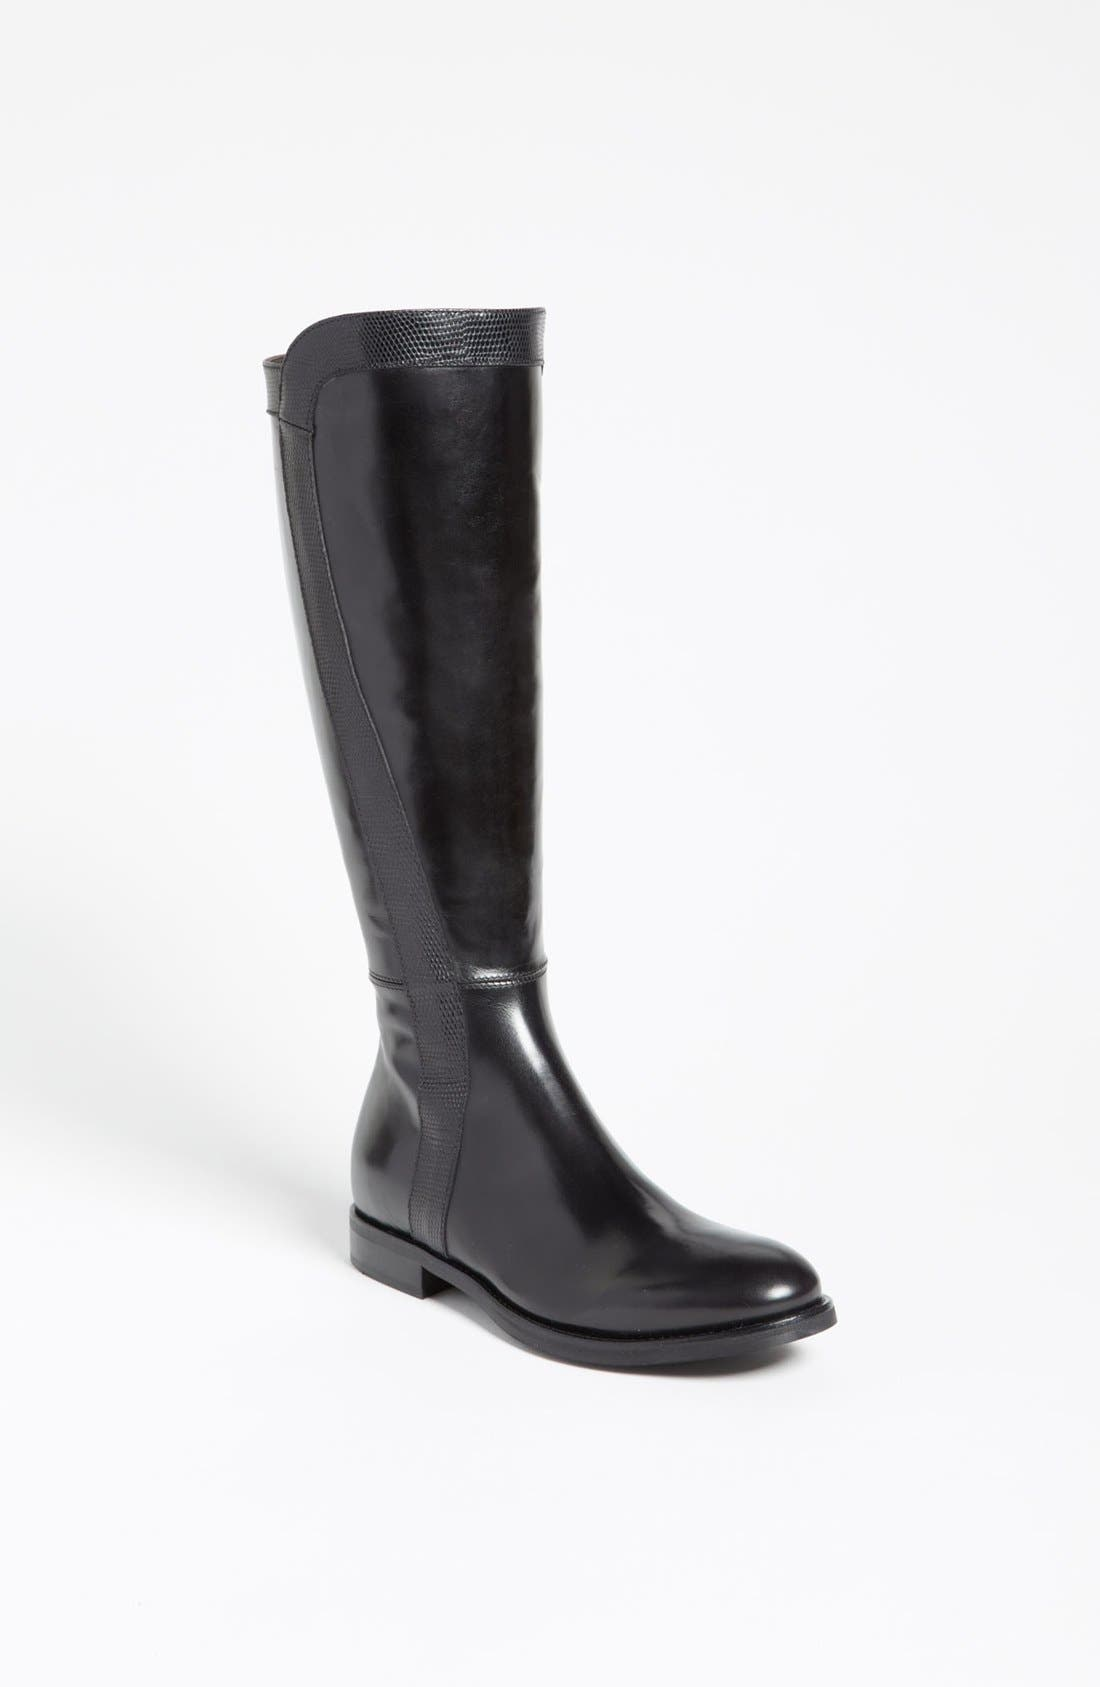 Attilio Giusti Leombruni Tall Boot,                             Main thumbnail 1, color,                             Black